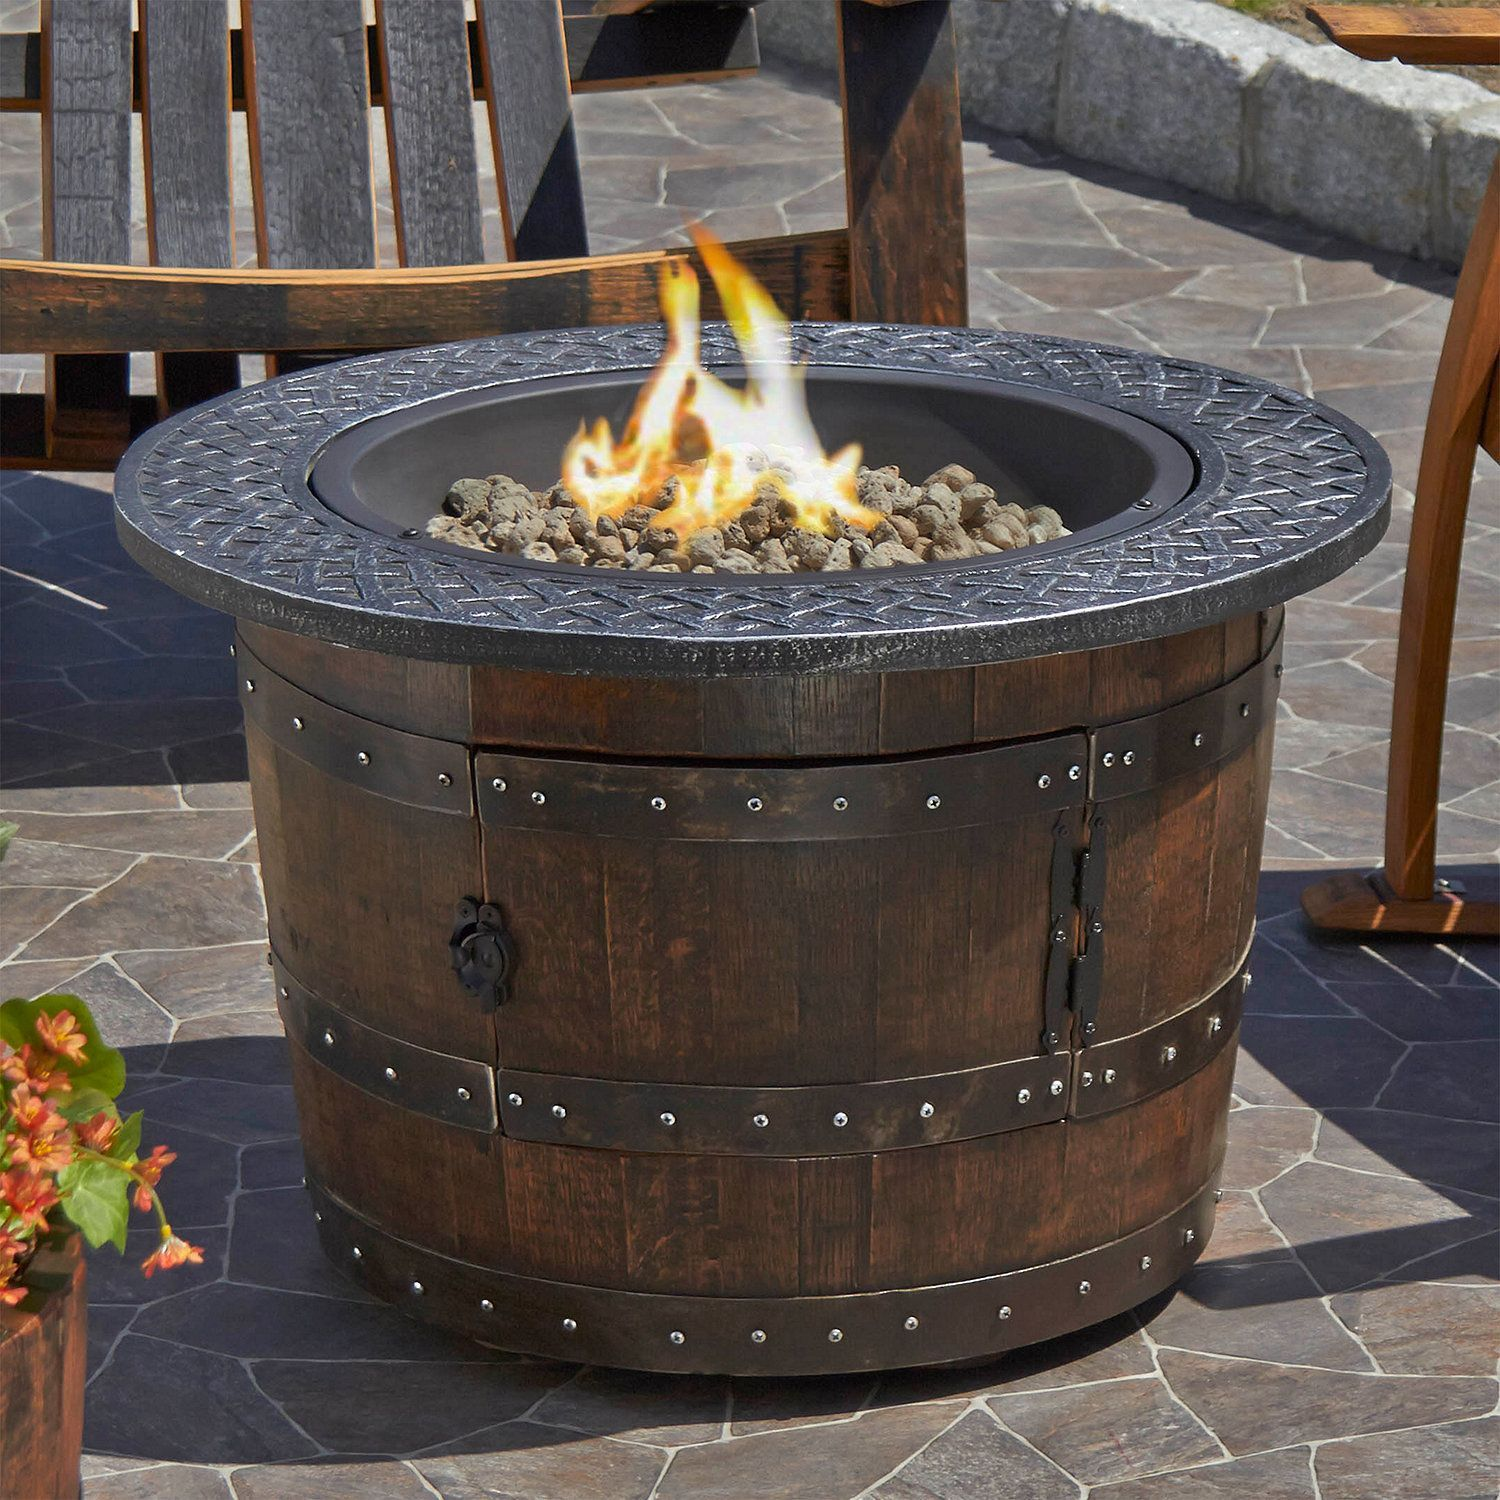 Reclaimed Whiskey Barrel Fire Pit - crafted from a retired bourbon barrel. - Reclaimed Whiskey Barrel Fire Pit - Crafted From A Retired Bourbon